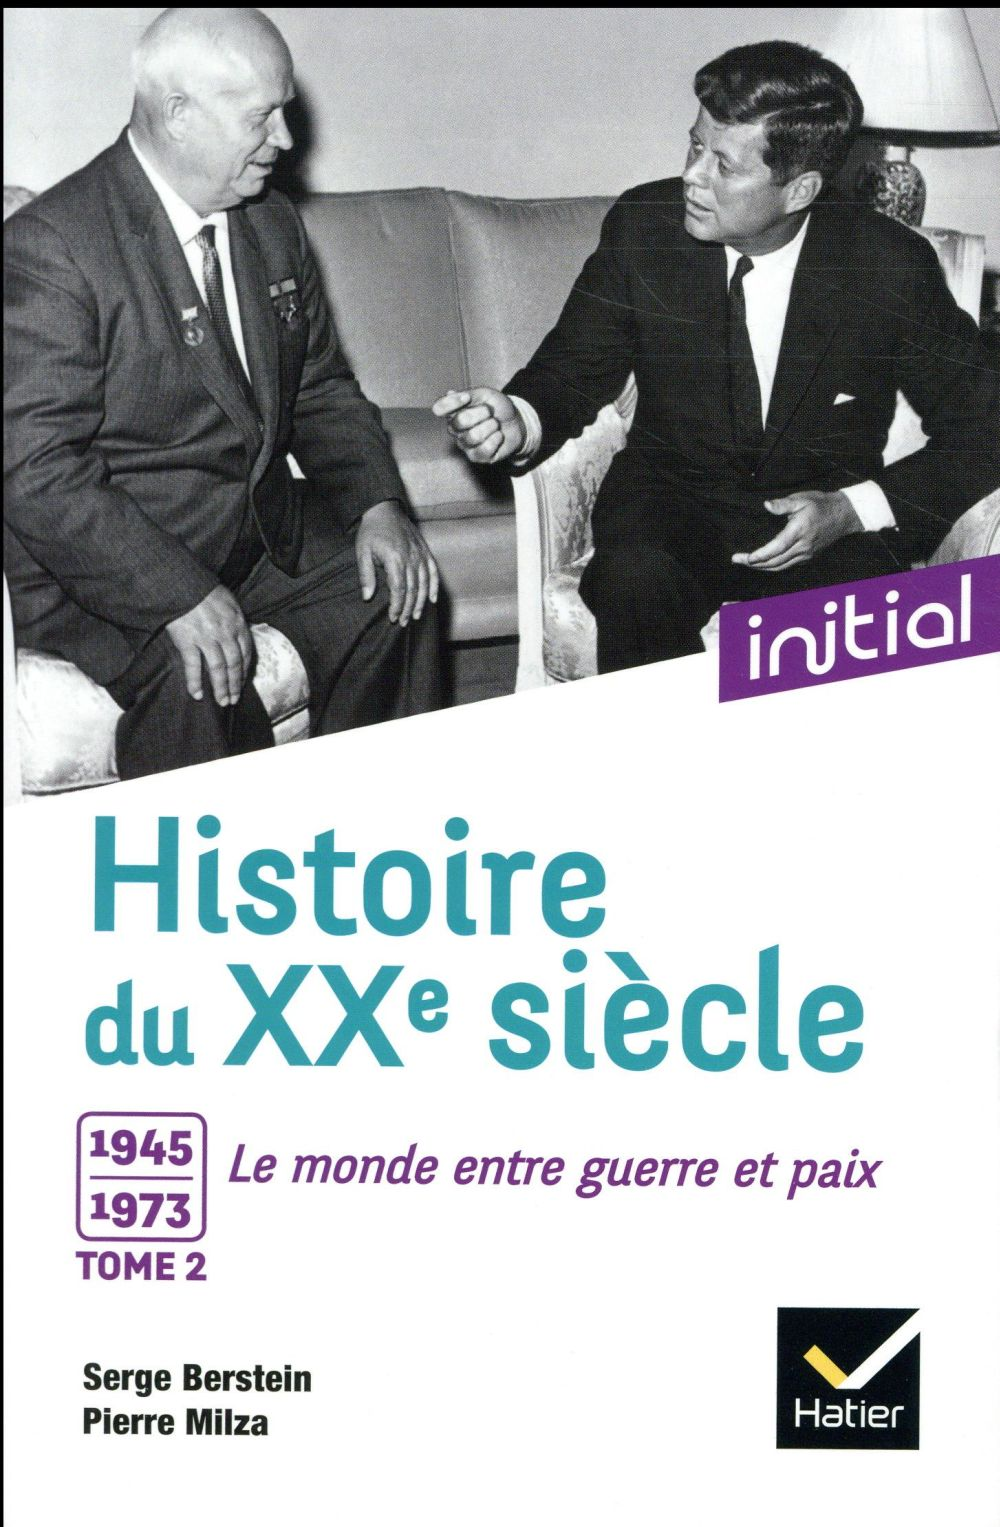 INITIAL - HISTOIRE DU XXE SIECLE TOME 2